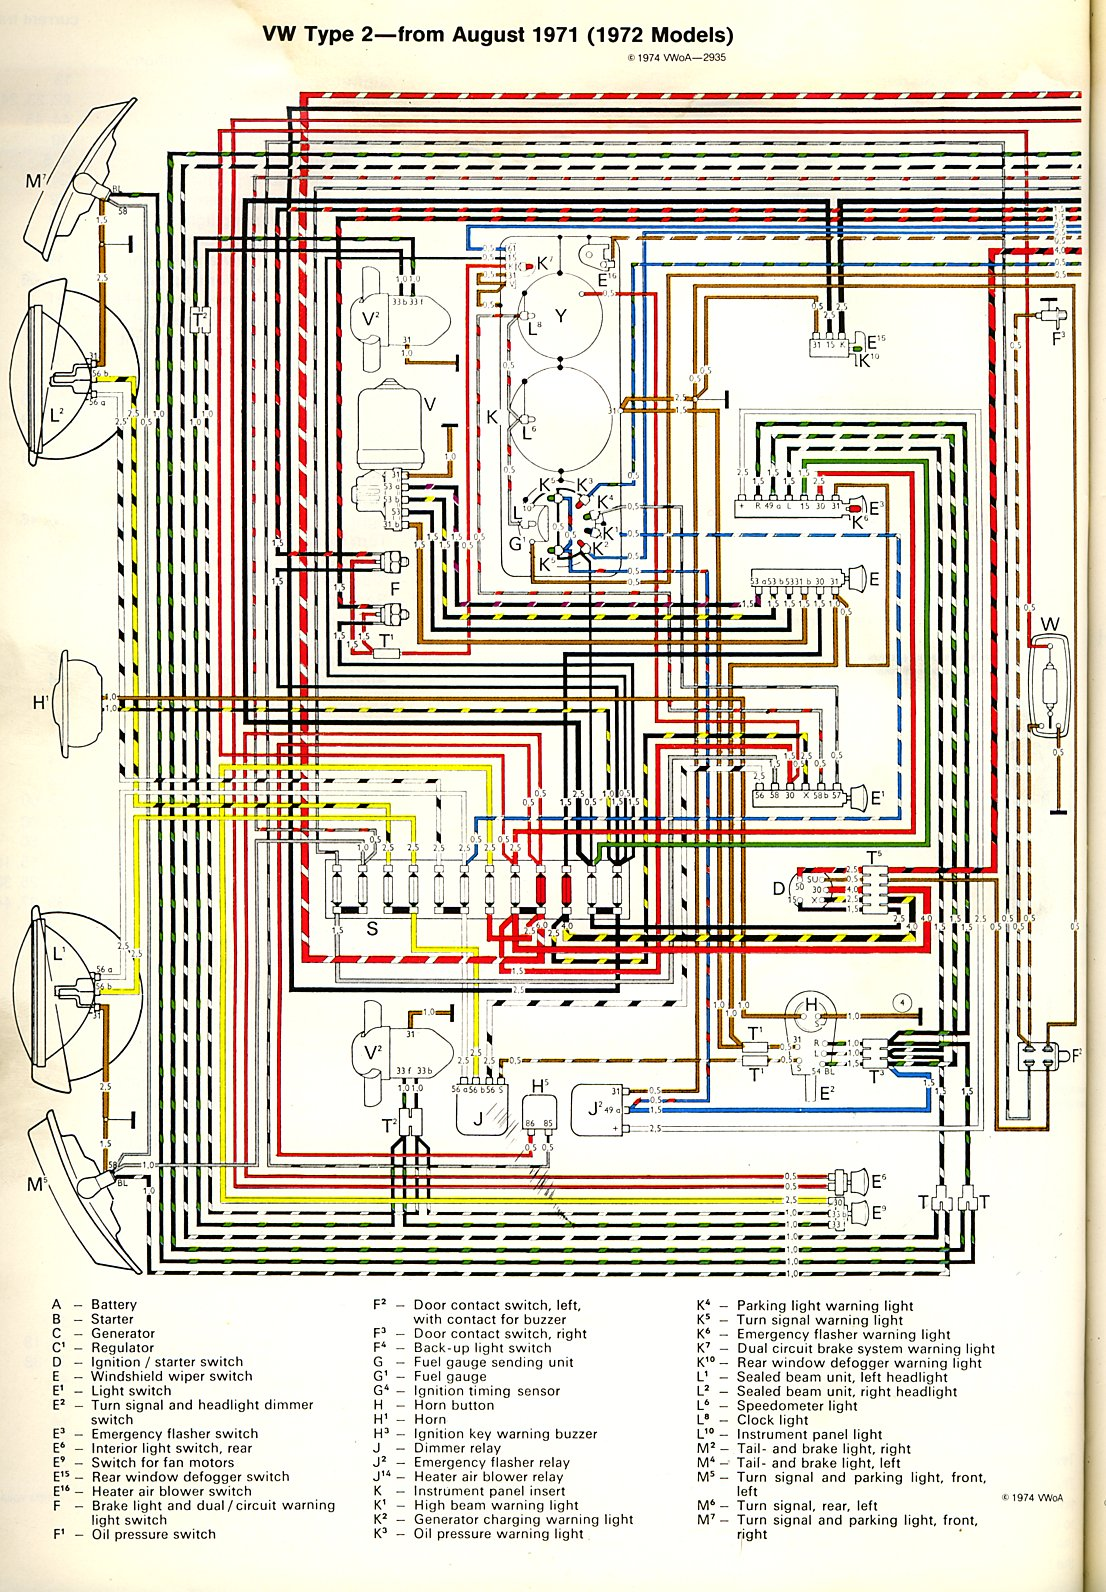 wiring diagram book pdf wiring wiring diagrams description baybus 72a wiring diagram book pdf